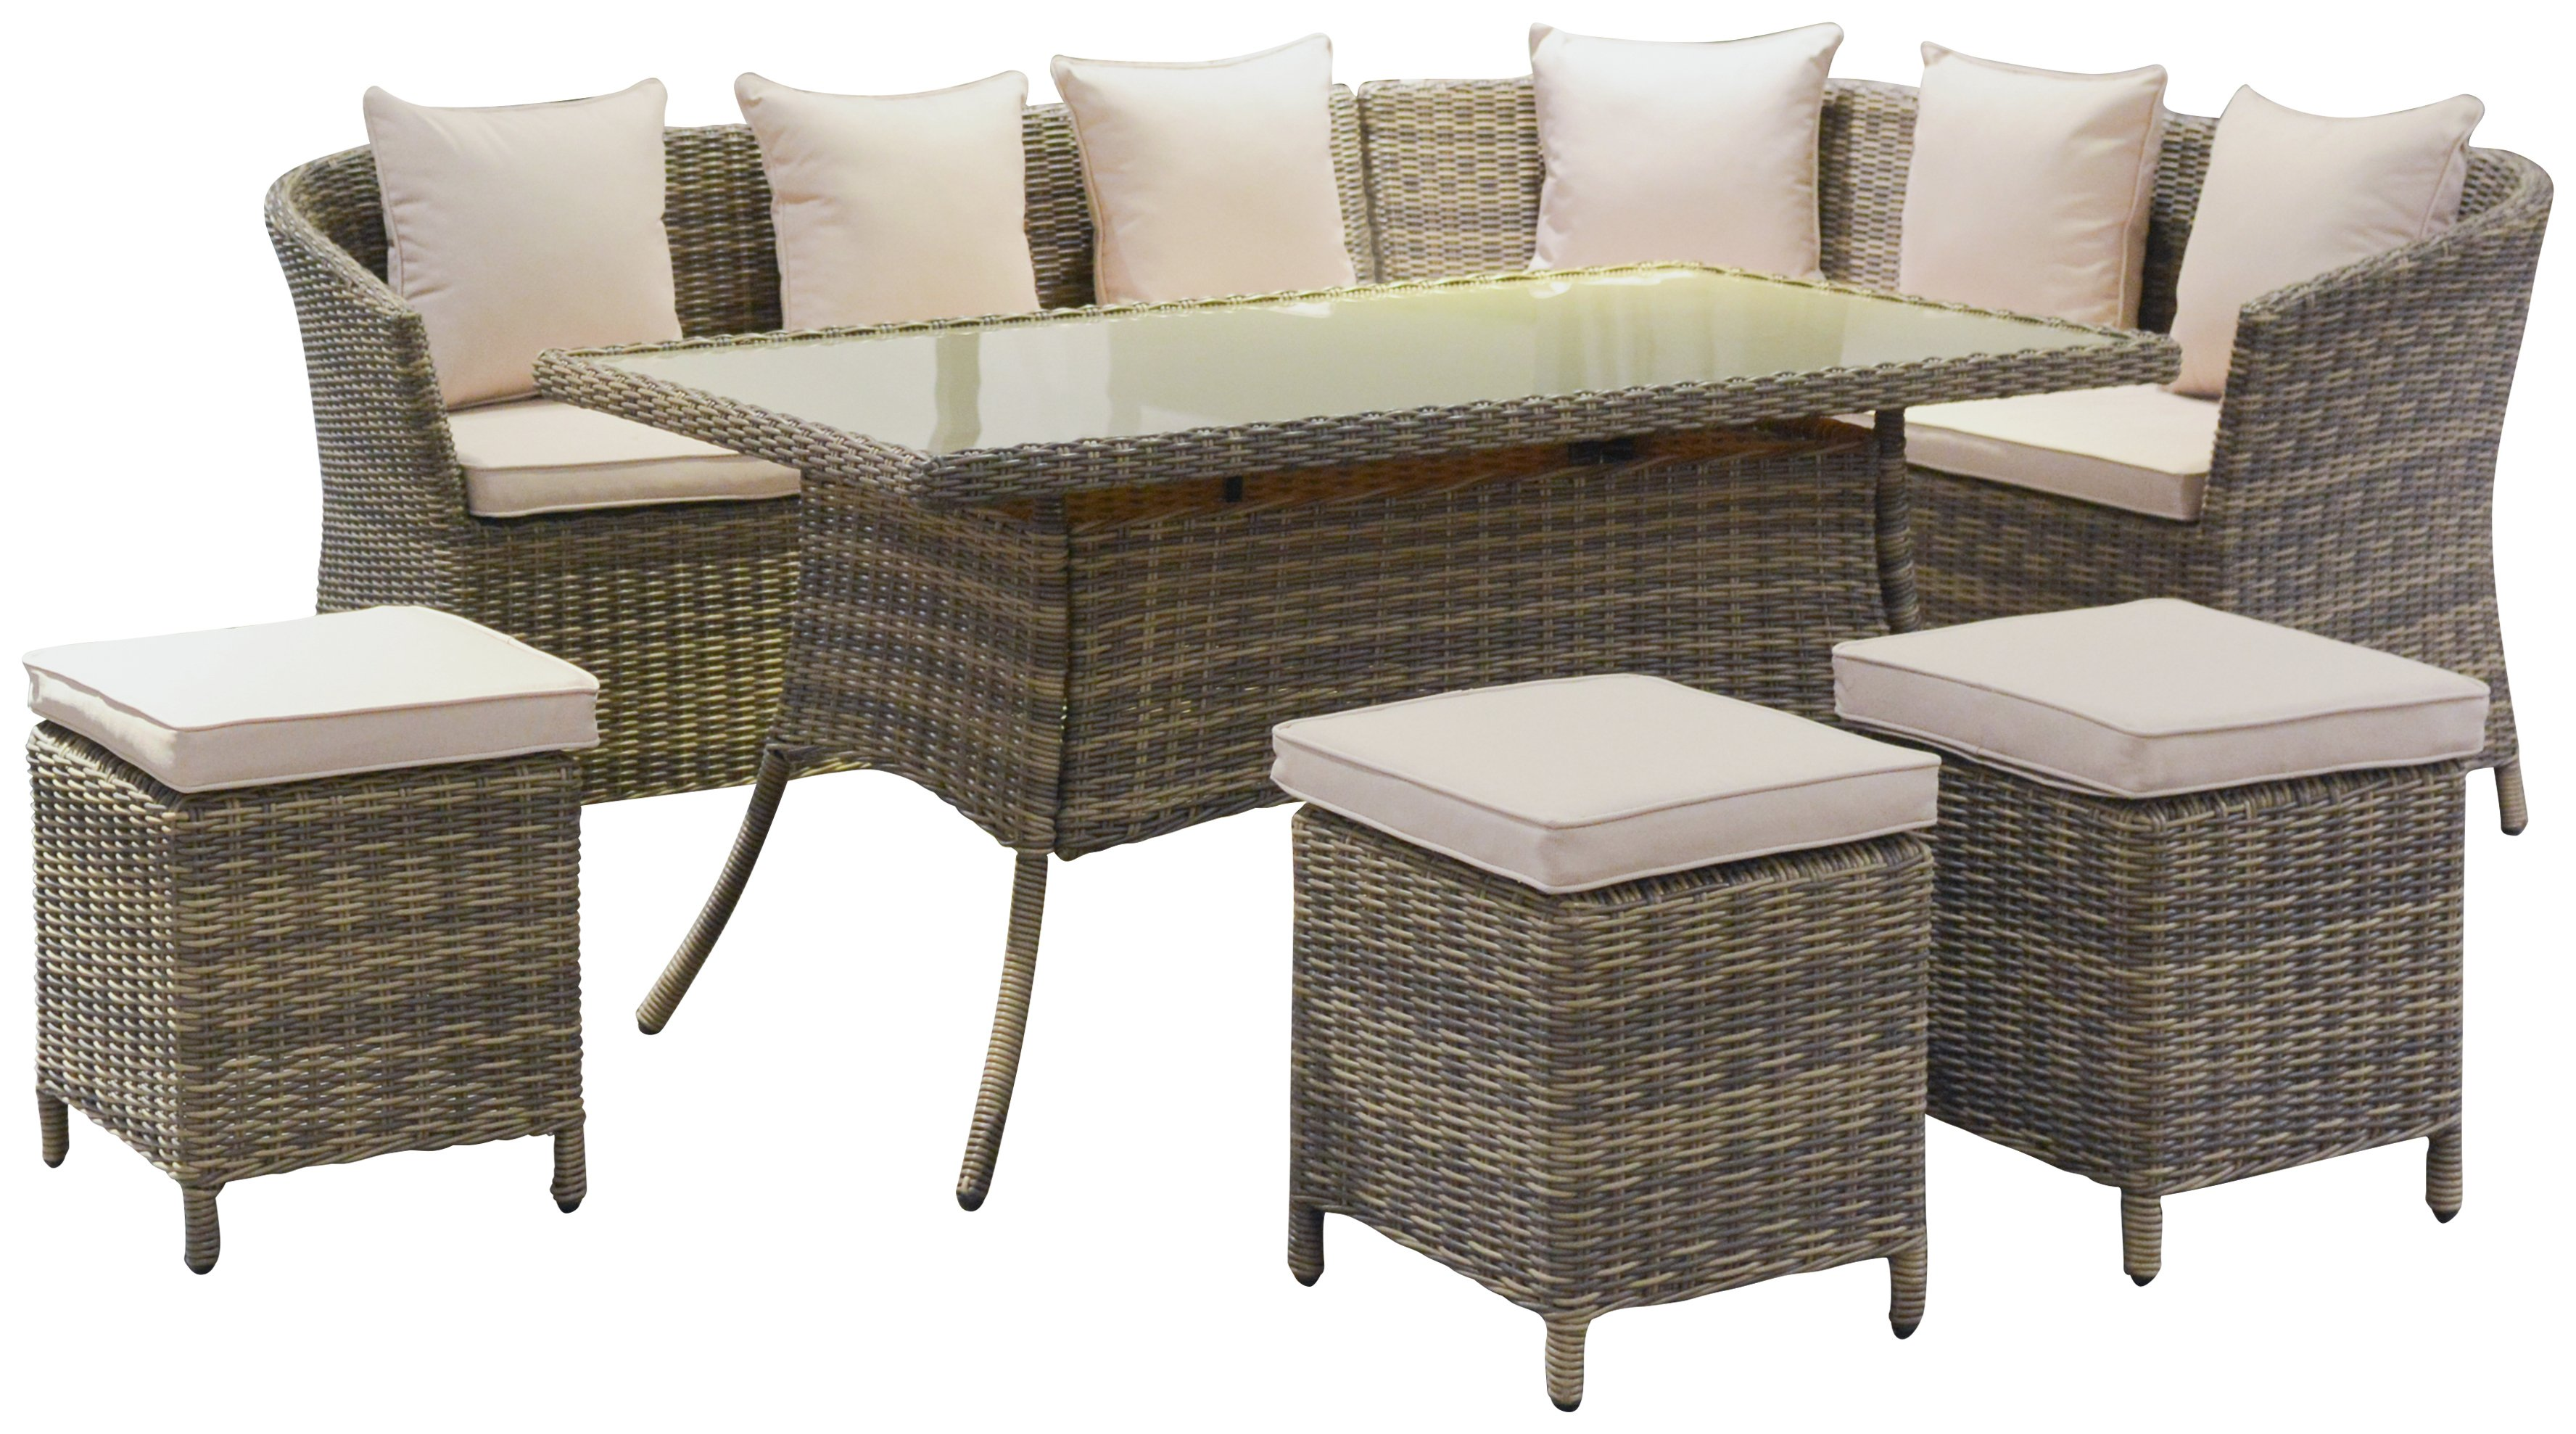 Ratten Effect - 8 Seater Corner Sofa, Dining Table and Stools lowest price